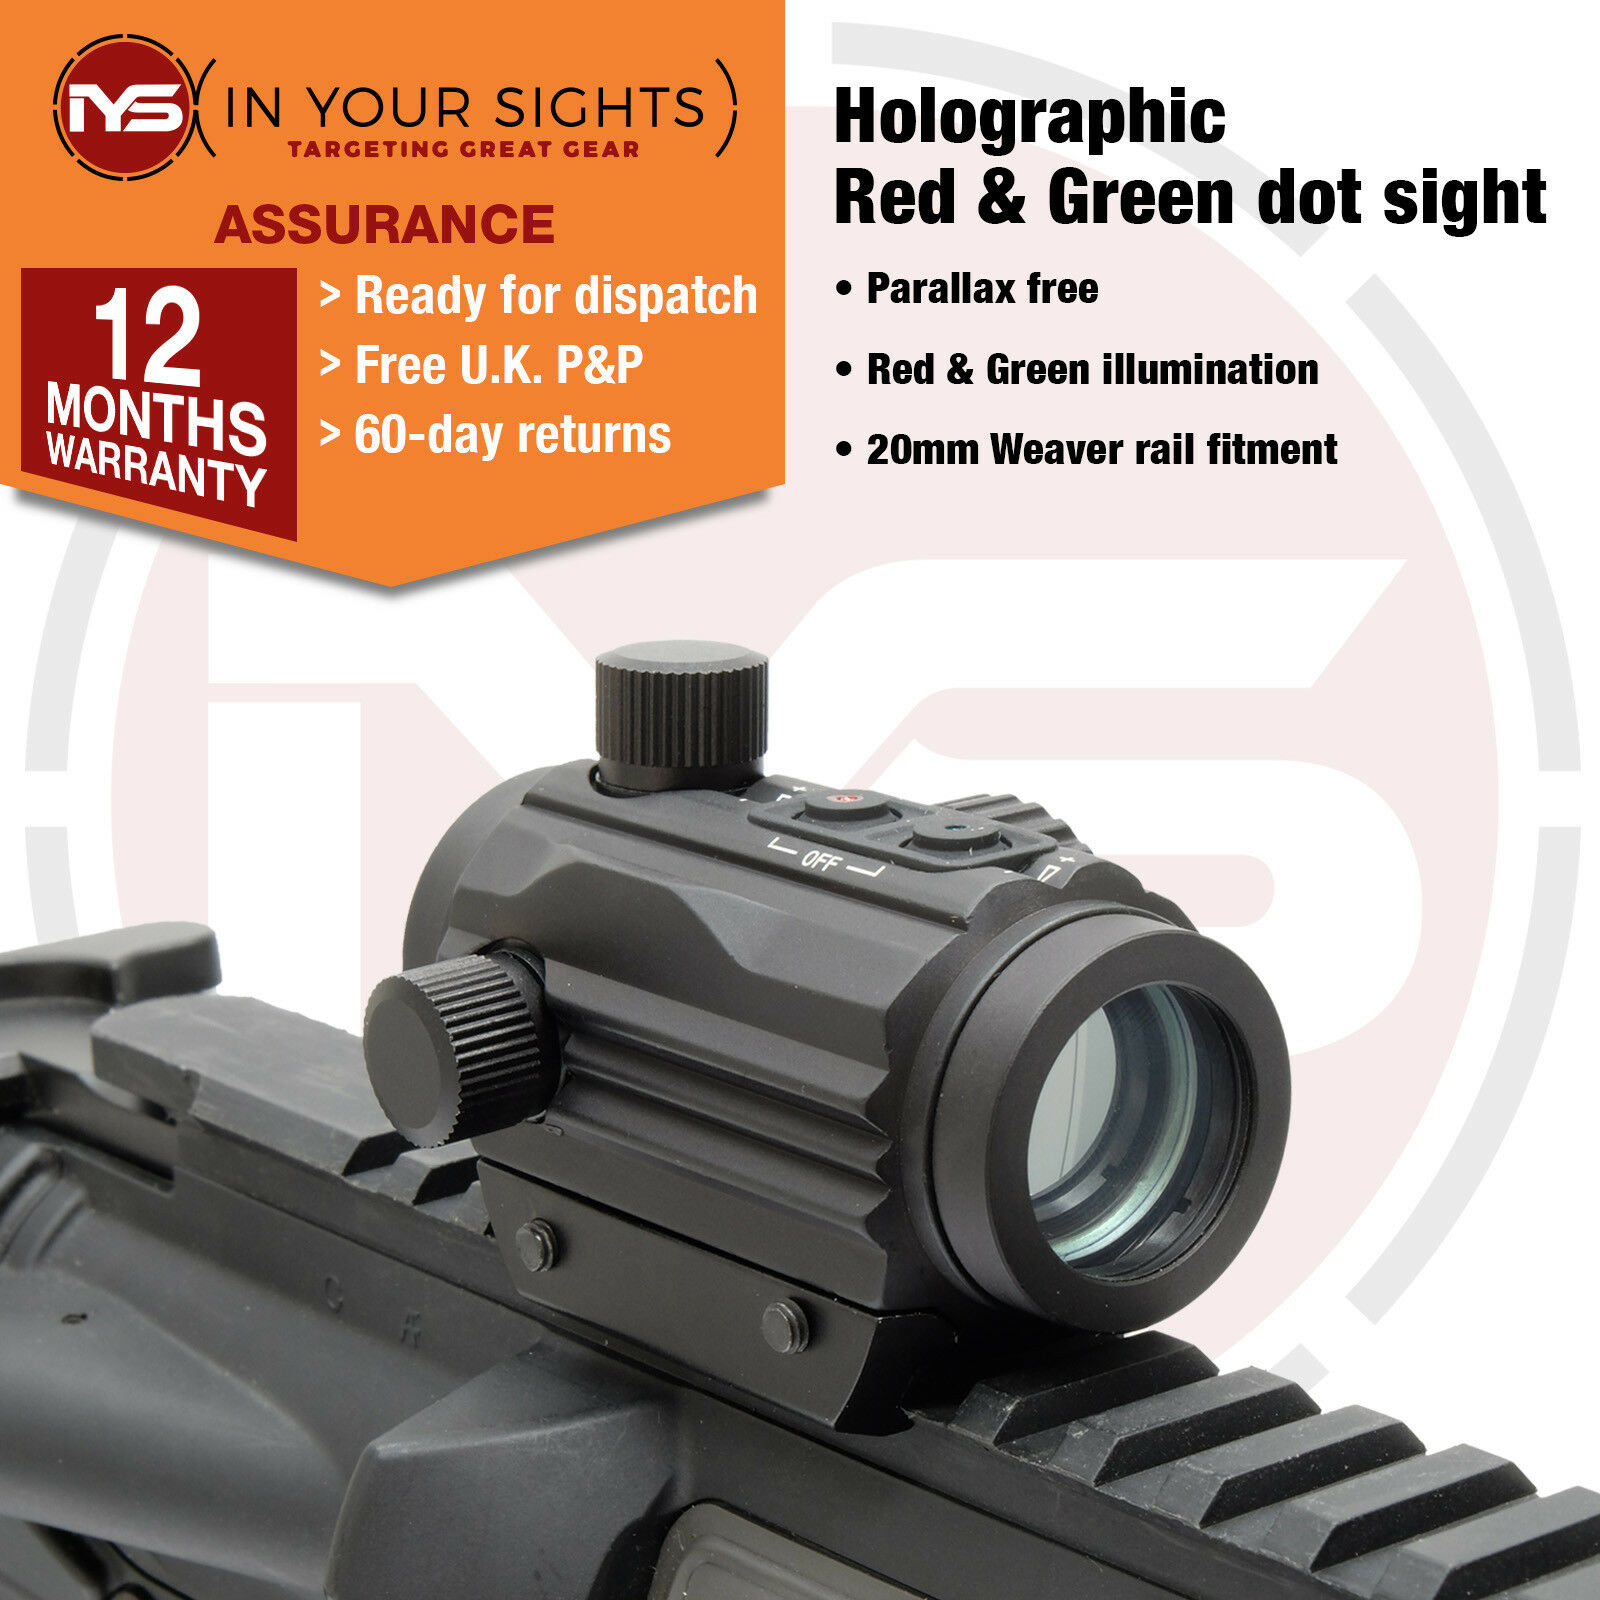 Holographic red & green dot sight  Micro M1 airsoft rifle sight. Fits 20mm rails